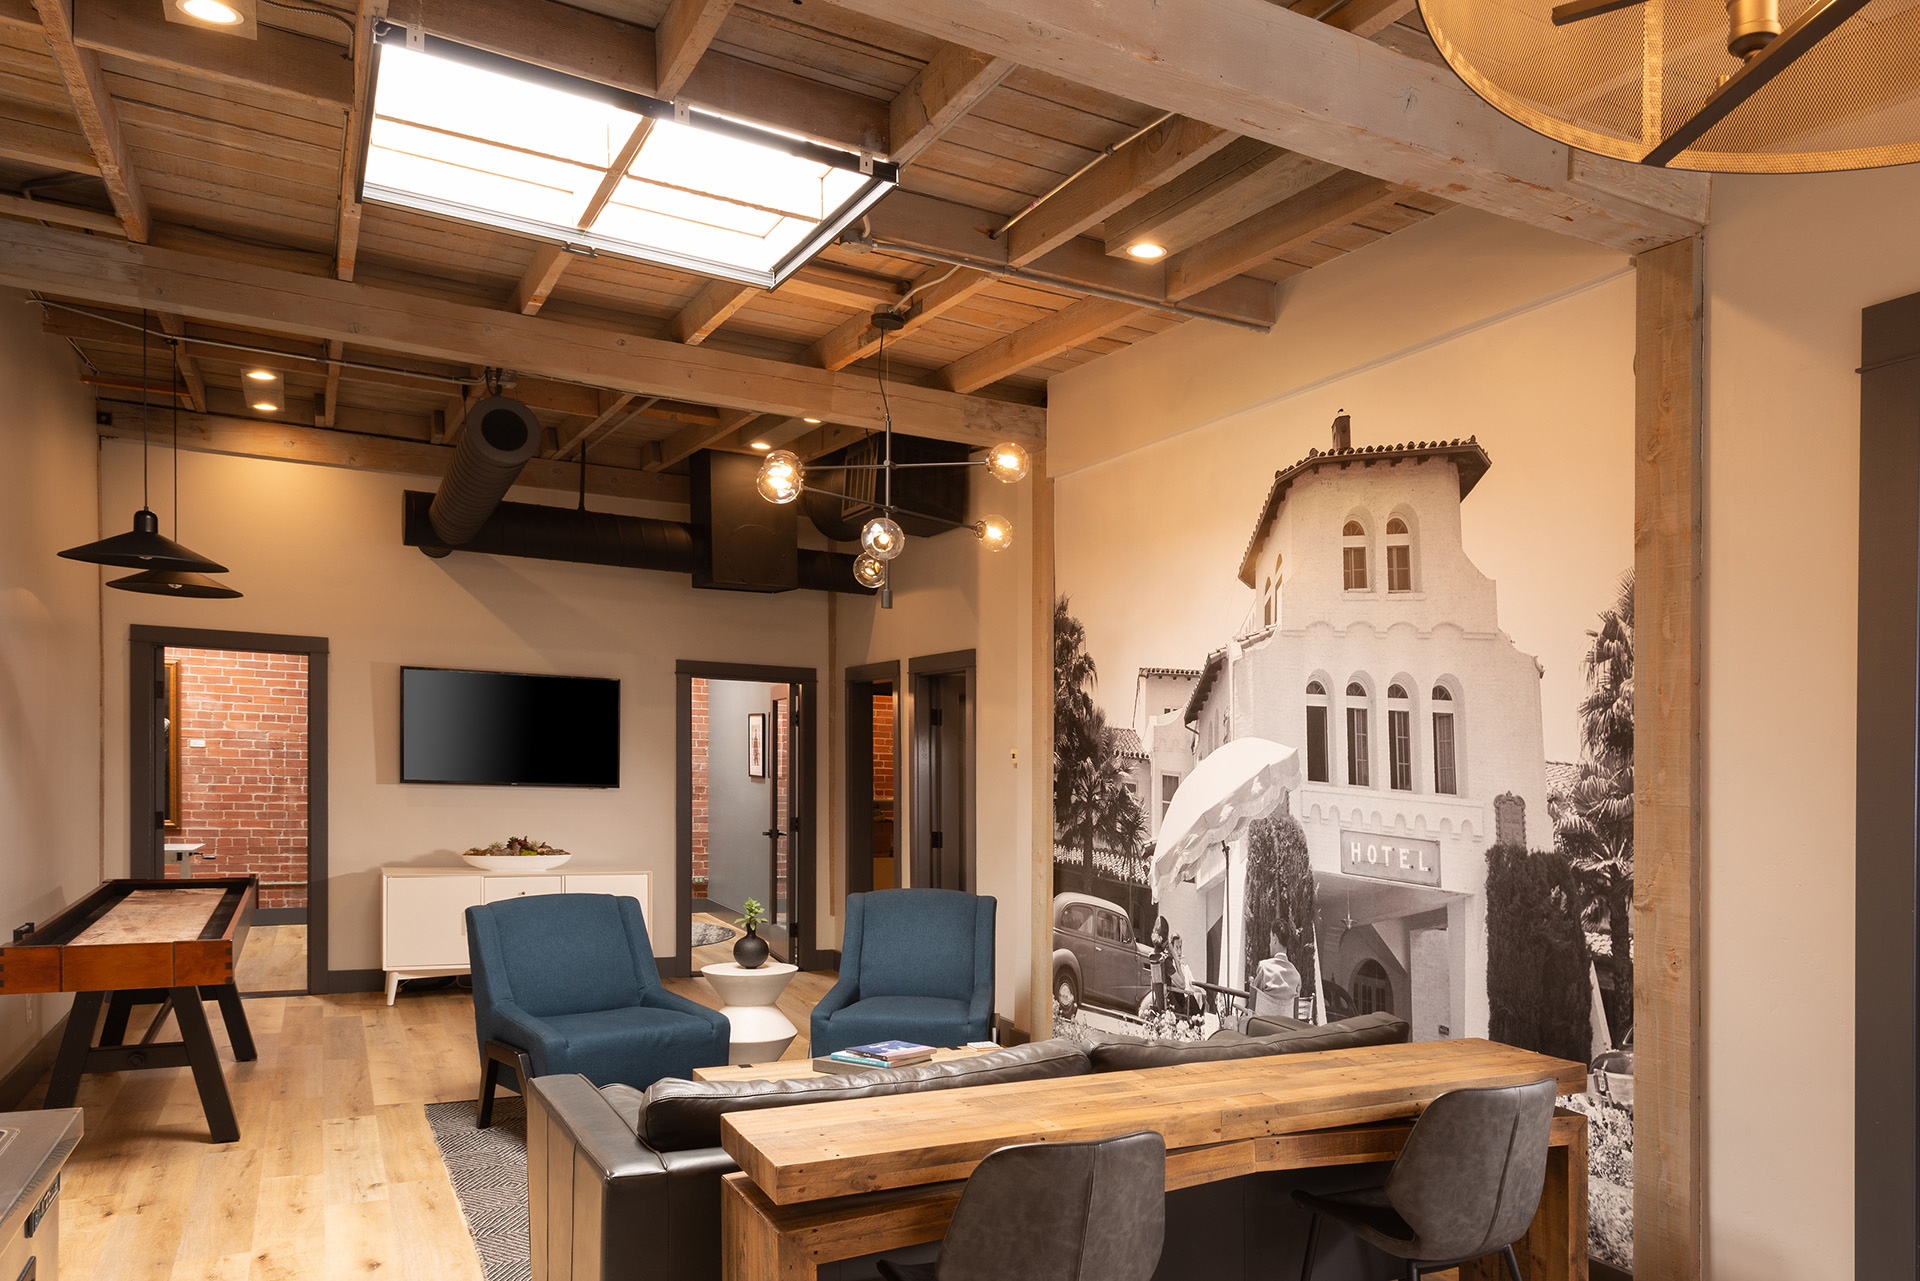 AZUL South Office seating area with mural